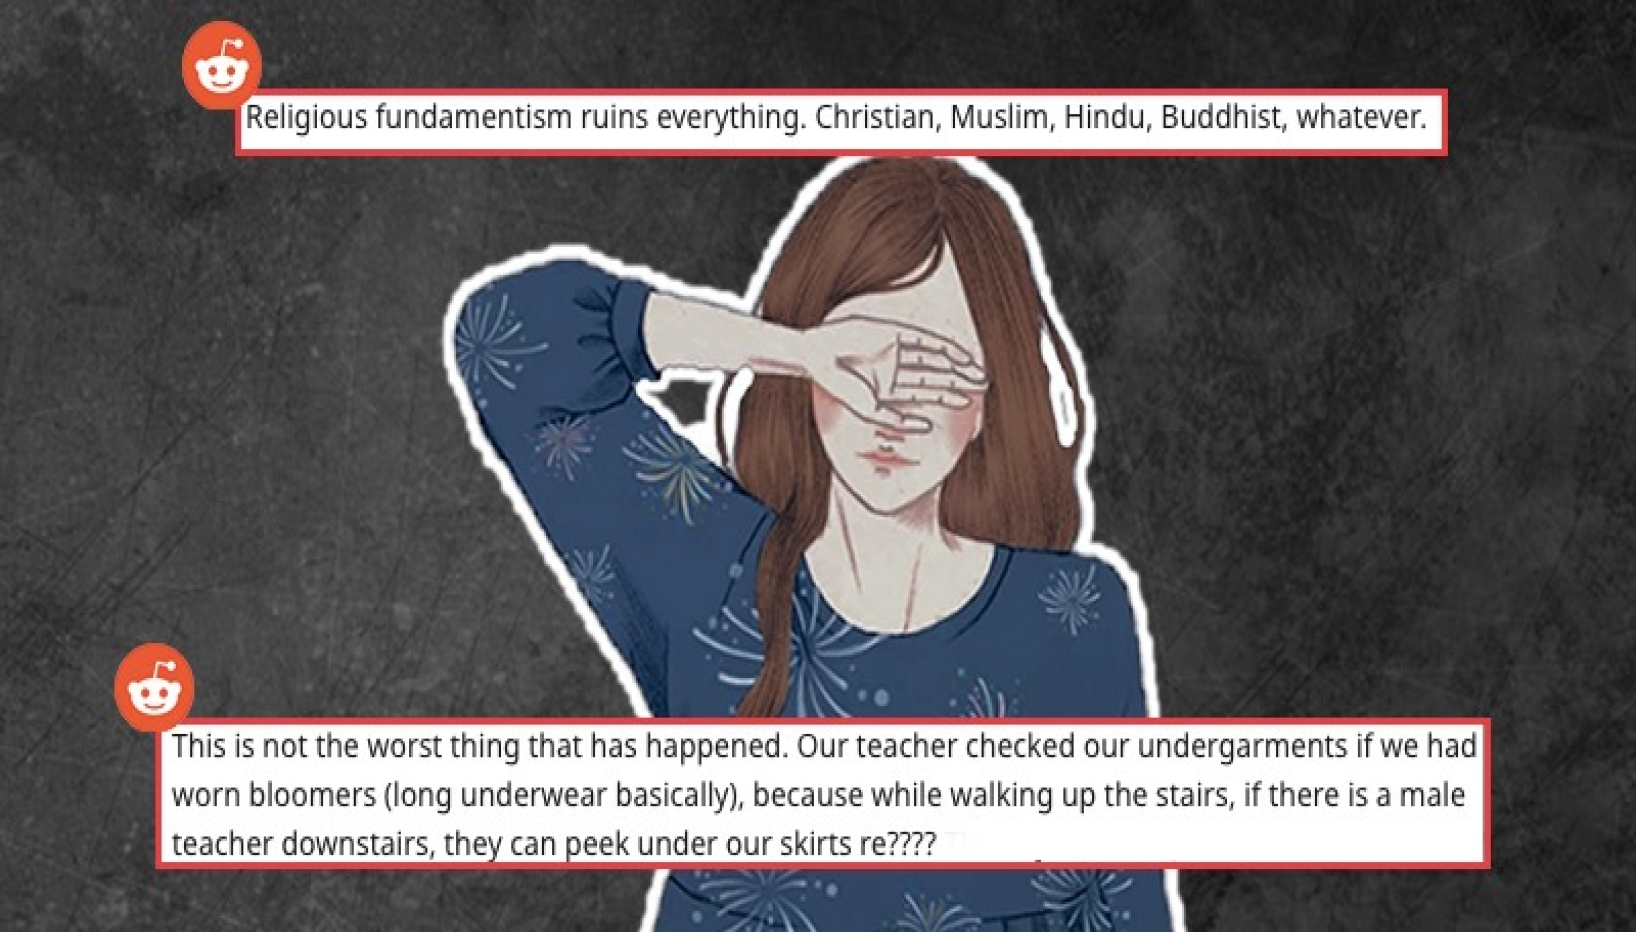 Redditors Speak Out About Institutional Misogyny At The Most Popular Girls' School In Nepal